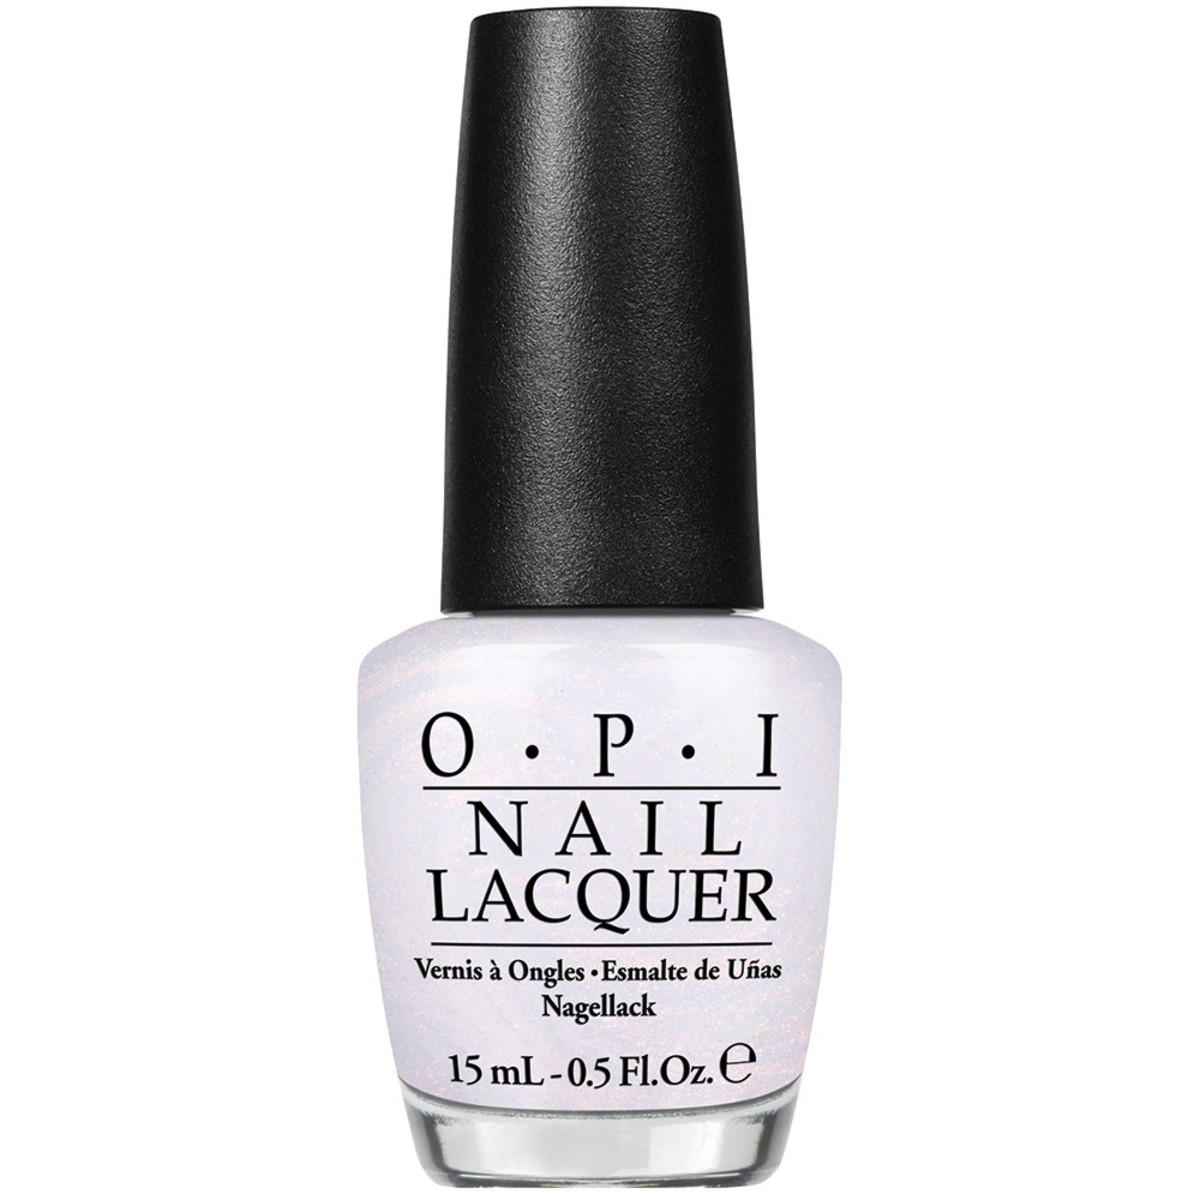 OPI Nail Lacquer in Oh My Majesty